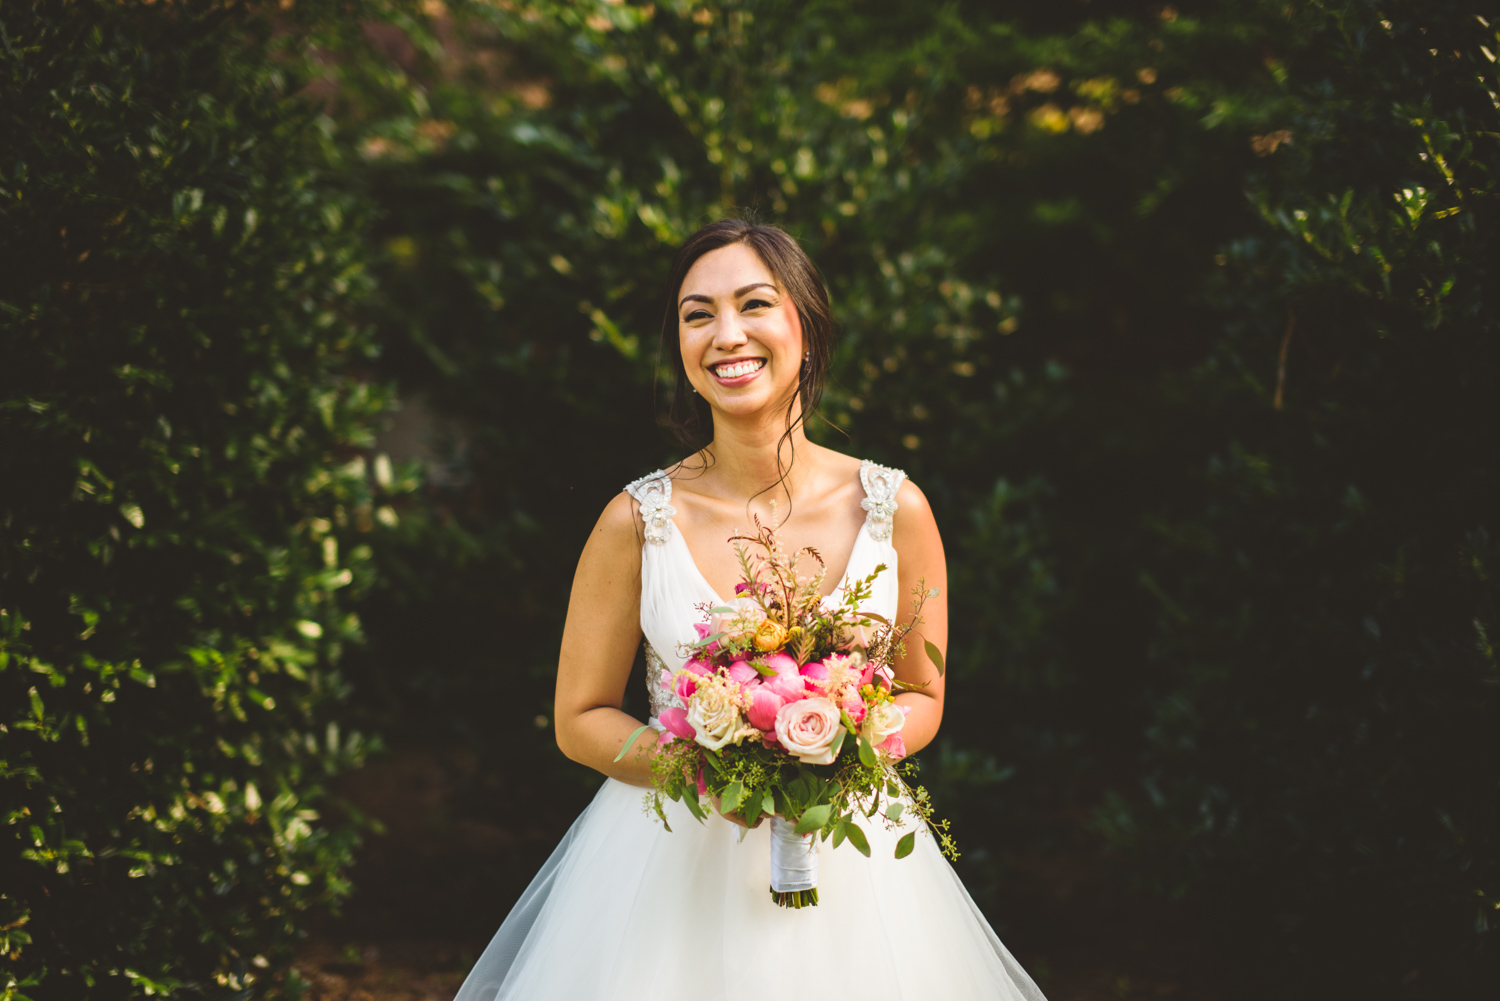 029 virginia bride laughing - Richmond Wedding Photographer nathan mitchell photography.jpg